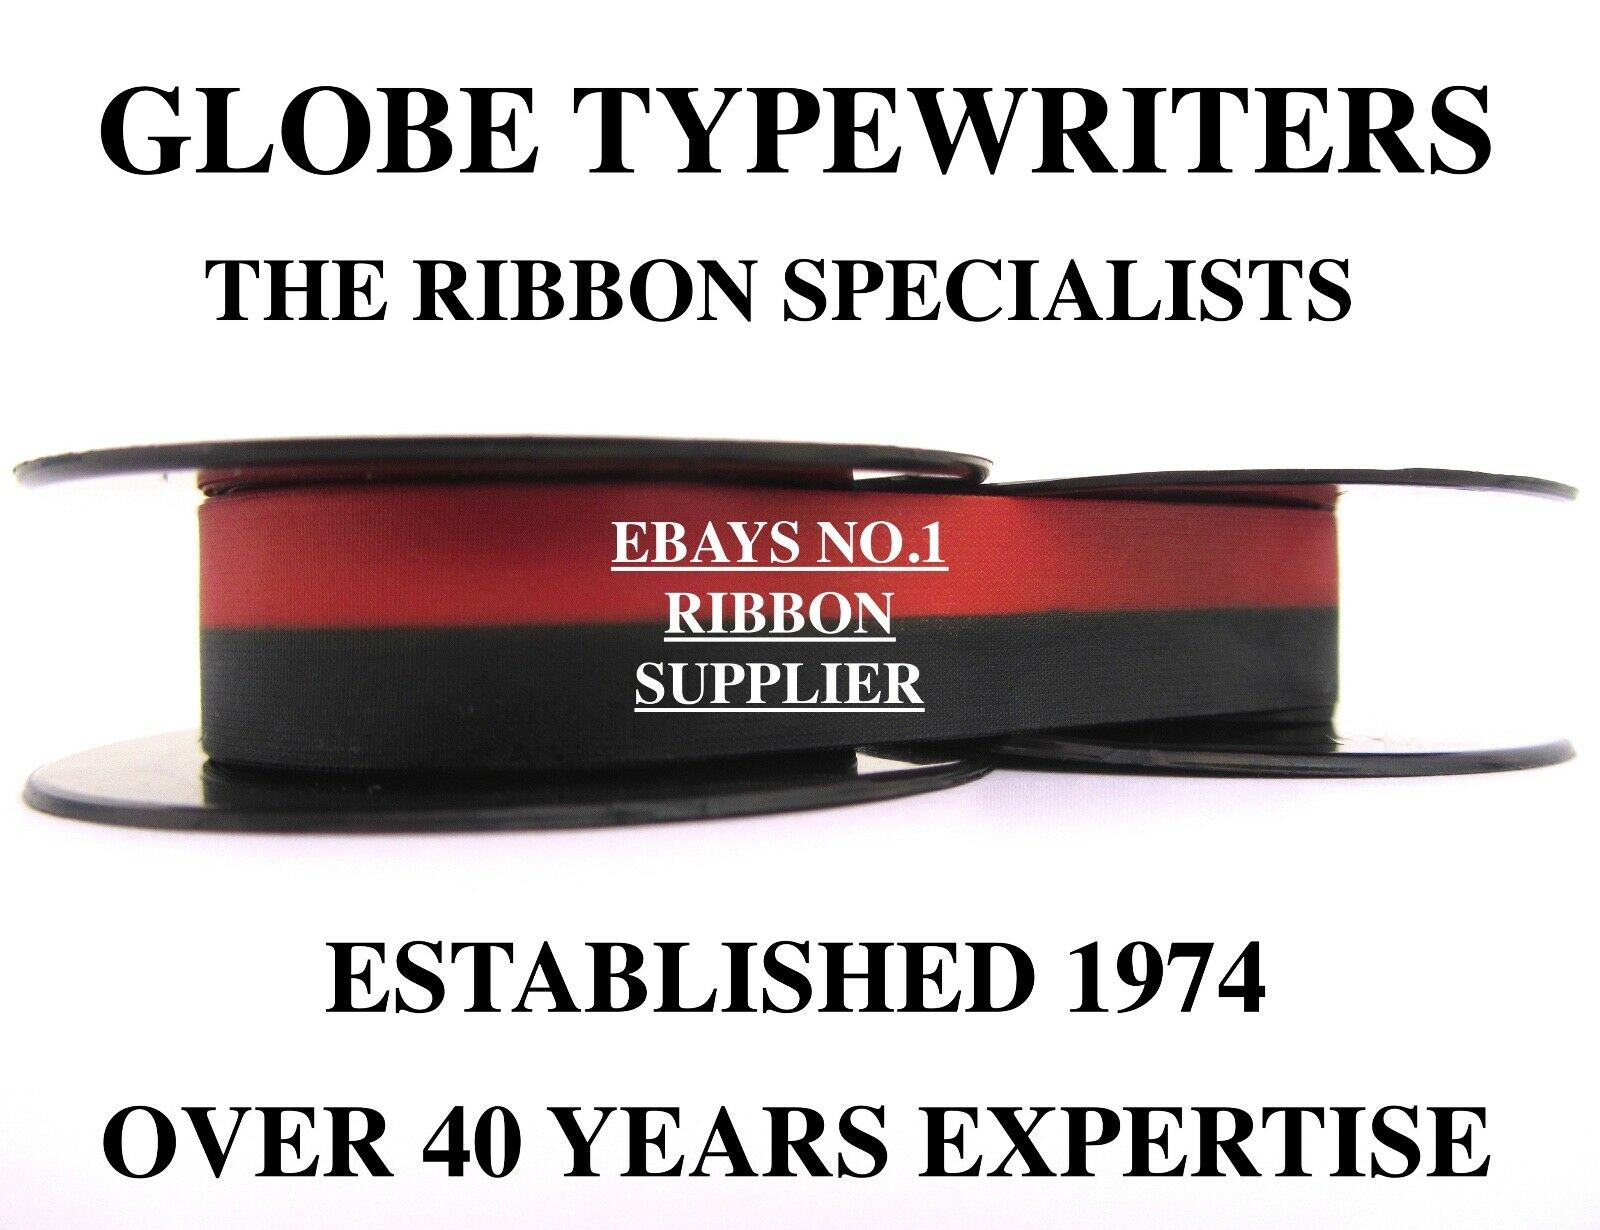 1 x 'SILVER REED SILVERETTE II' *BLACK/RED* TOP QUALITY *10M* TYPEWRITER RIBBON